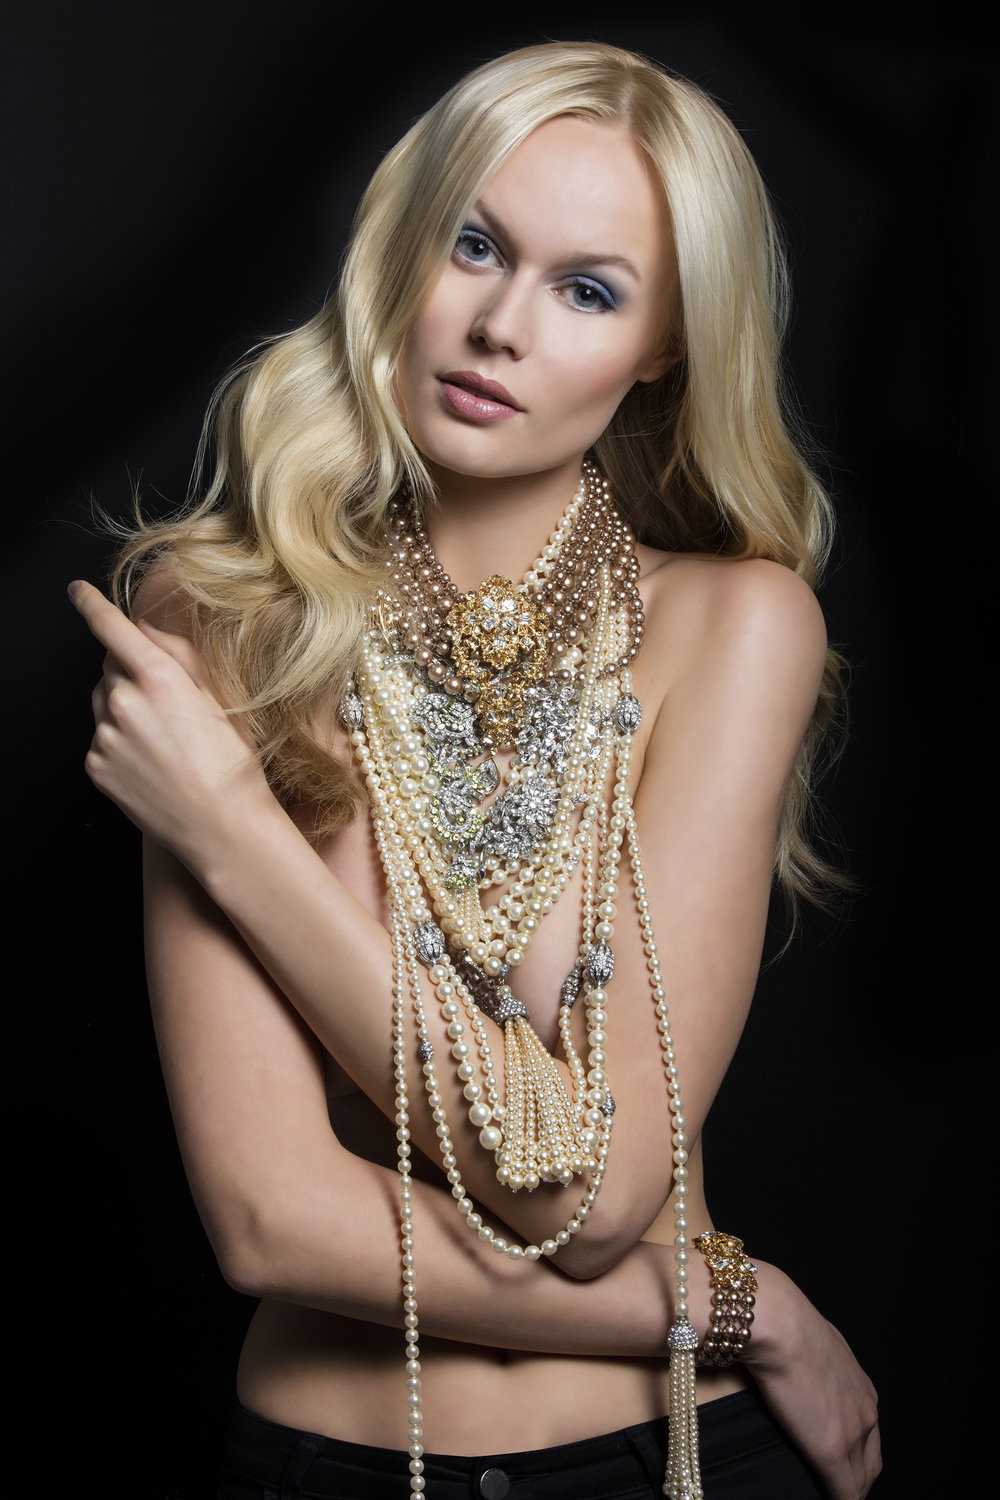 nyc_fashion_photographer_beauty_jewelry